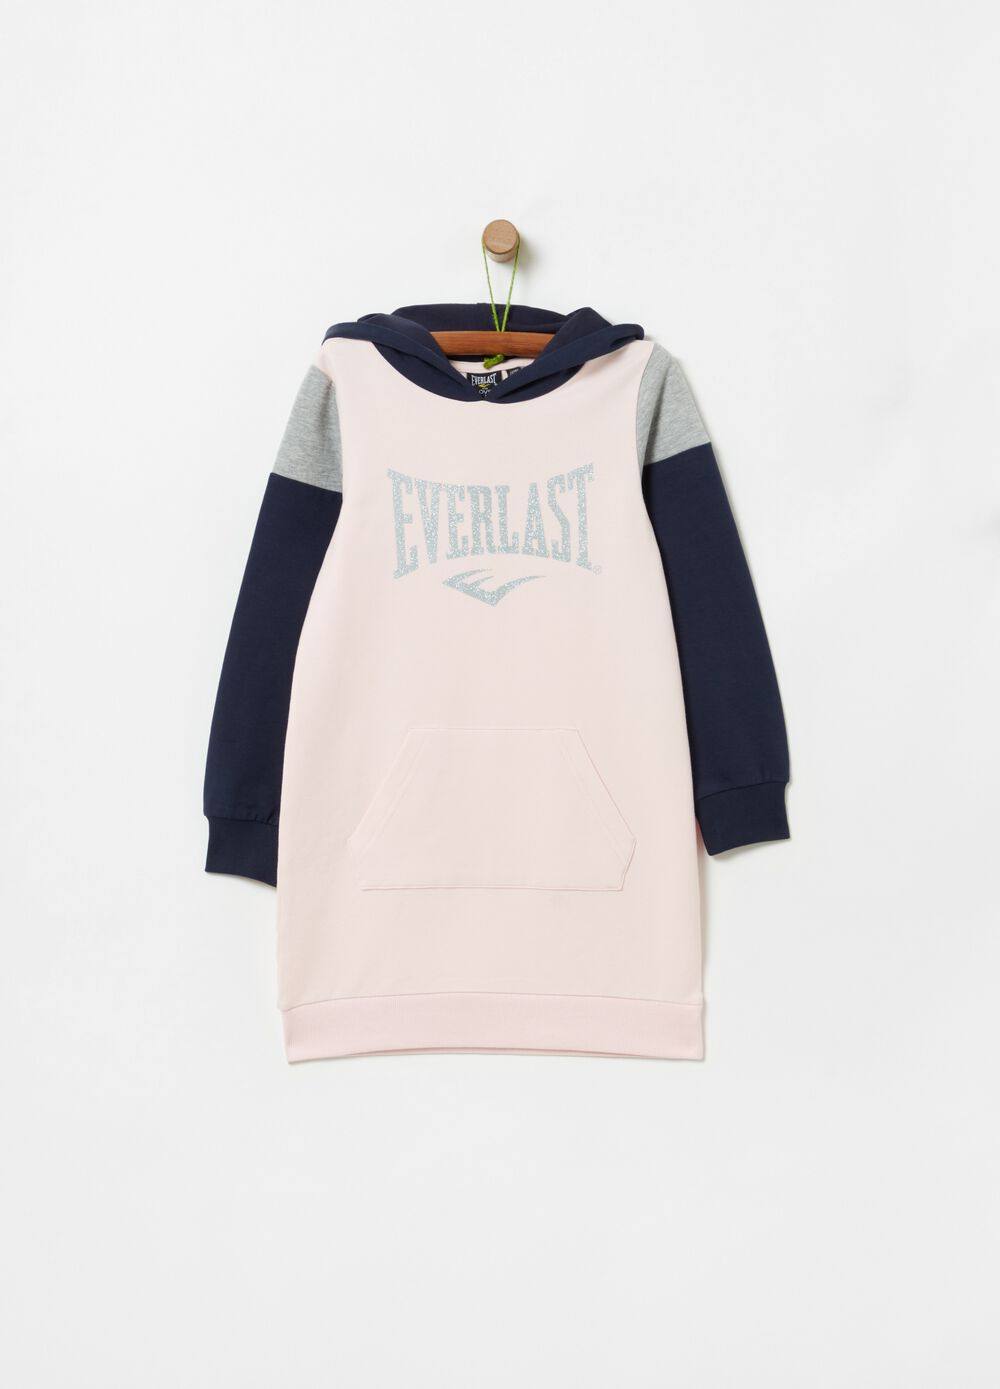 Two-tone dress with Everlast print